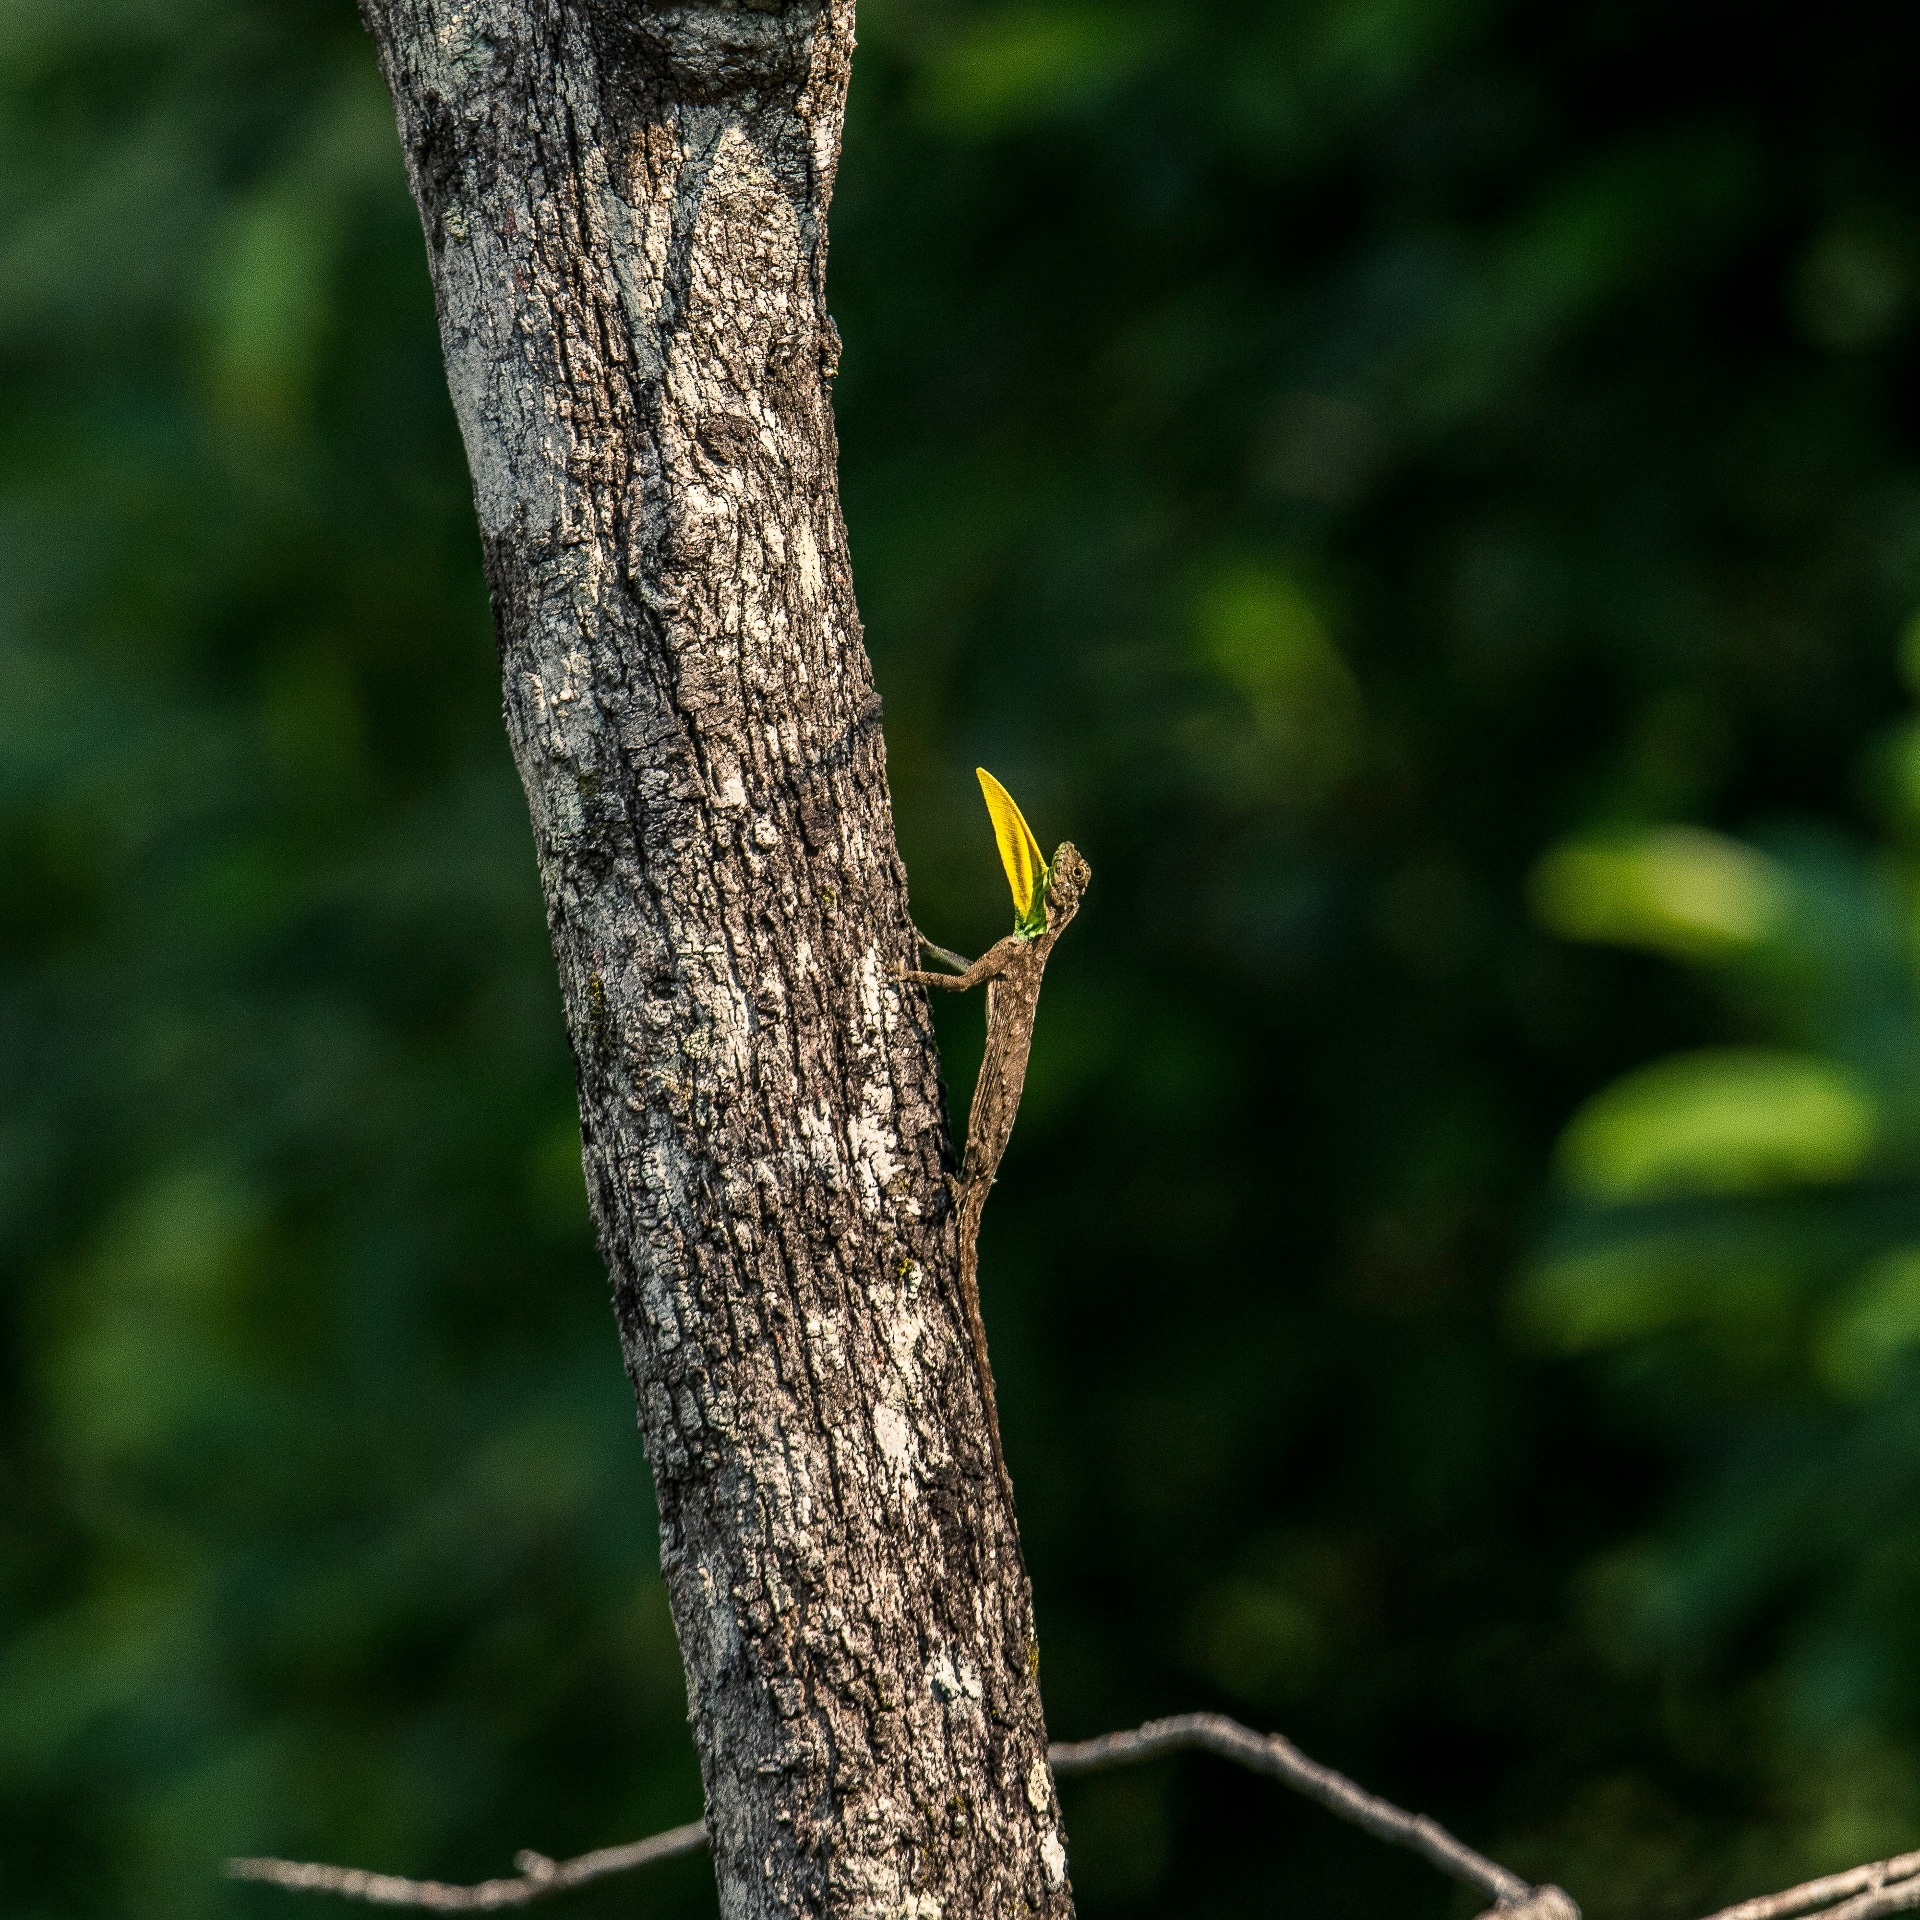 A male draco perched high up a tree, sending out a visual signal with its bright yellow-green dewlap. Photo: Samuel John